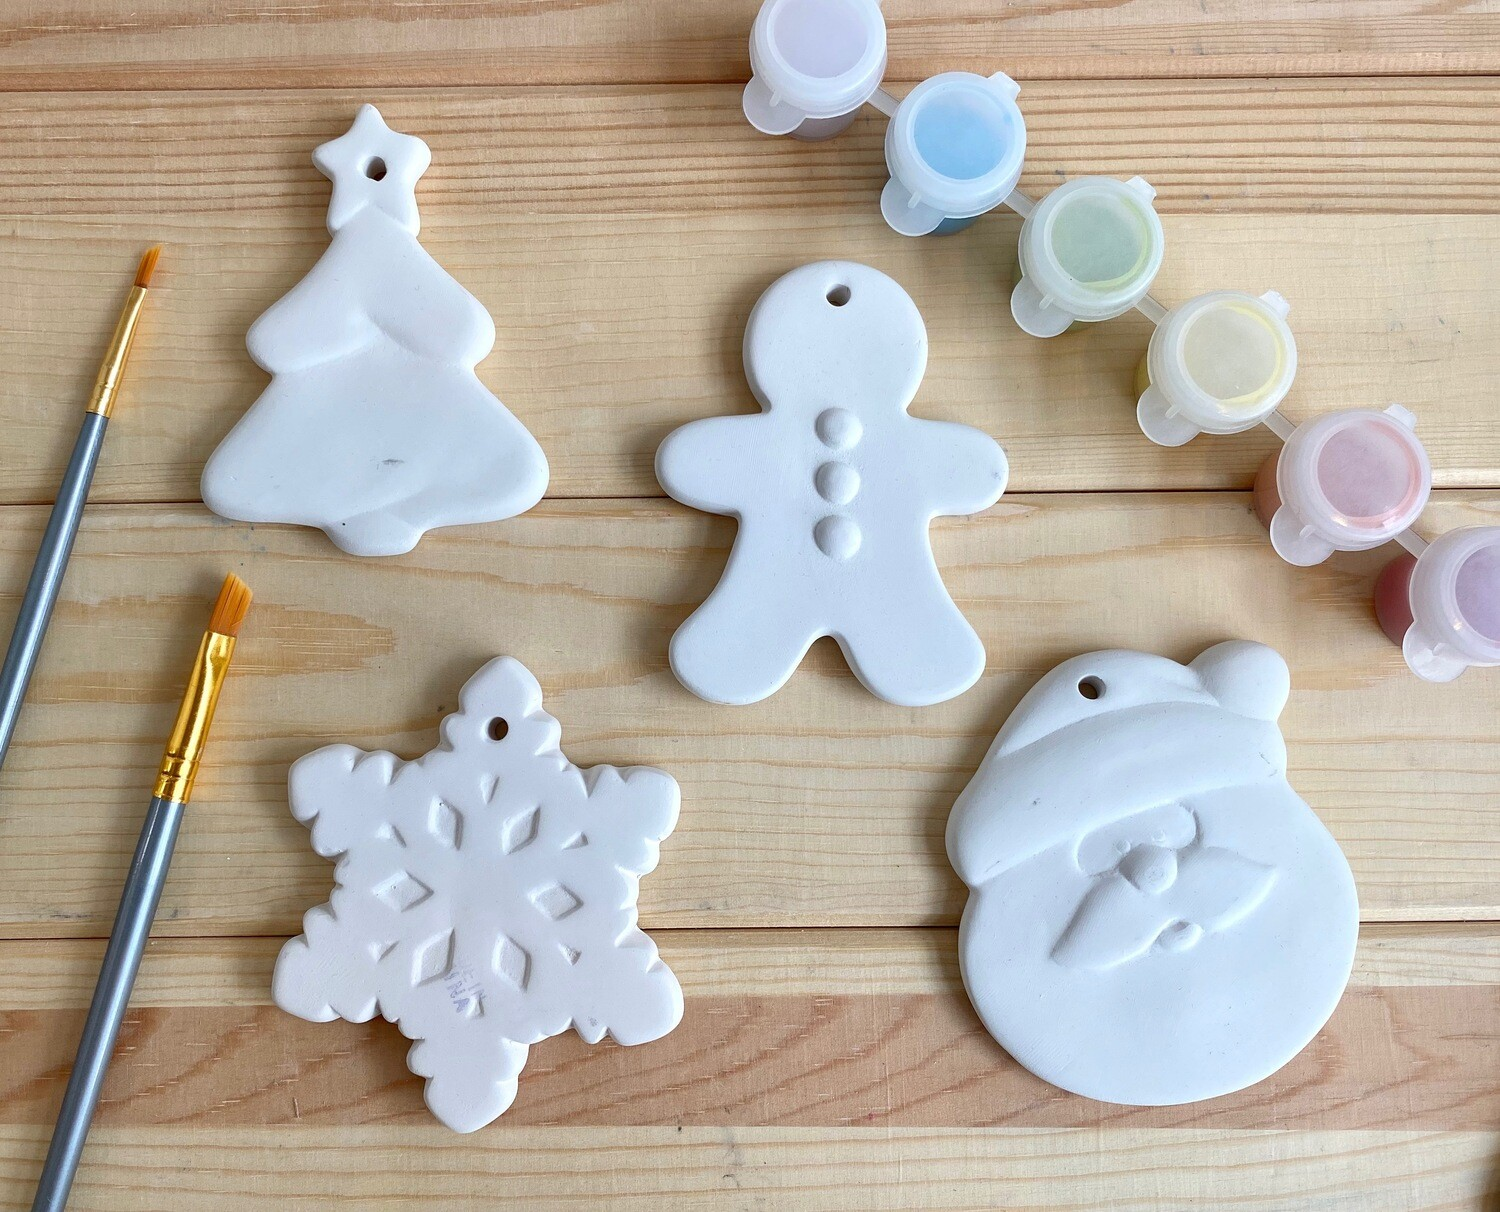 Take Home Coloring Book 4 Small Flat Ornaments Kit with Glazes - Pick up Curbside